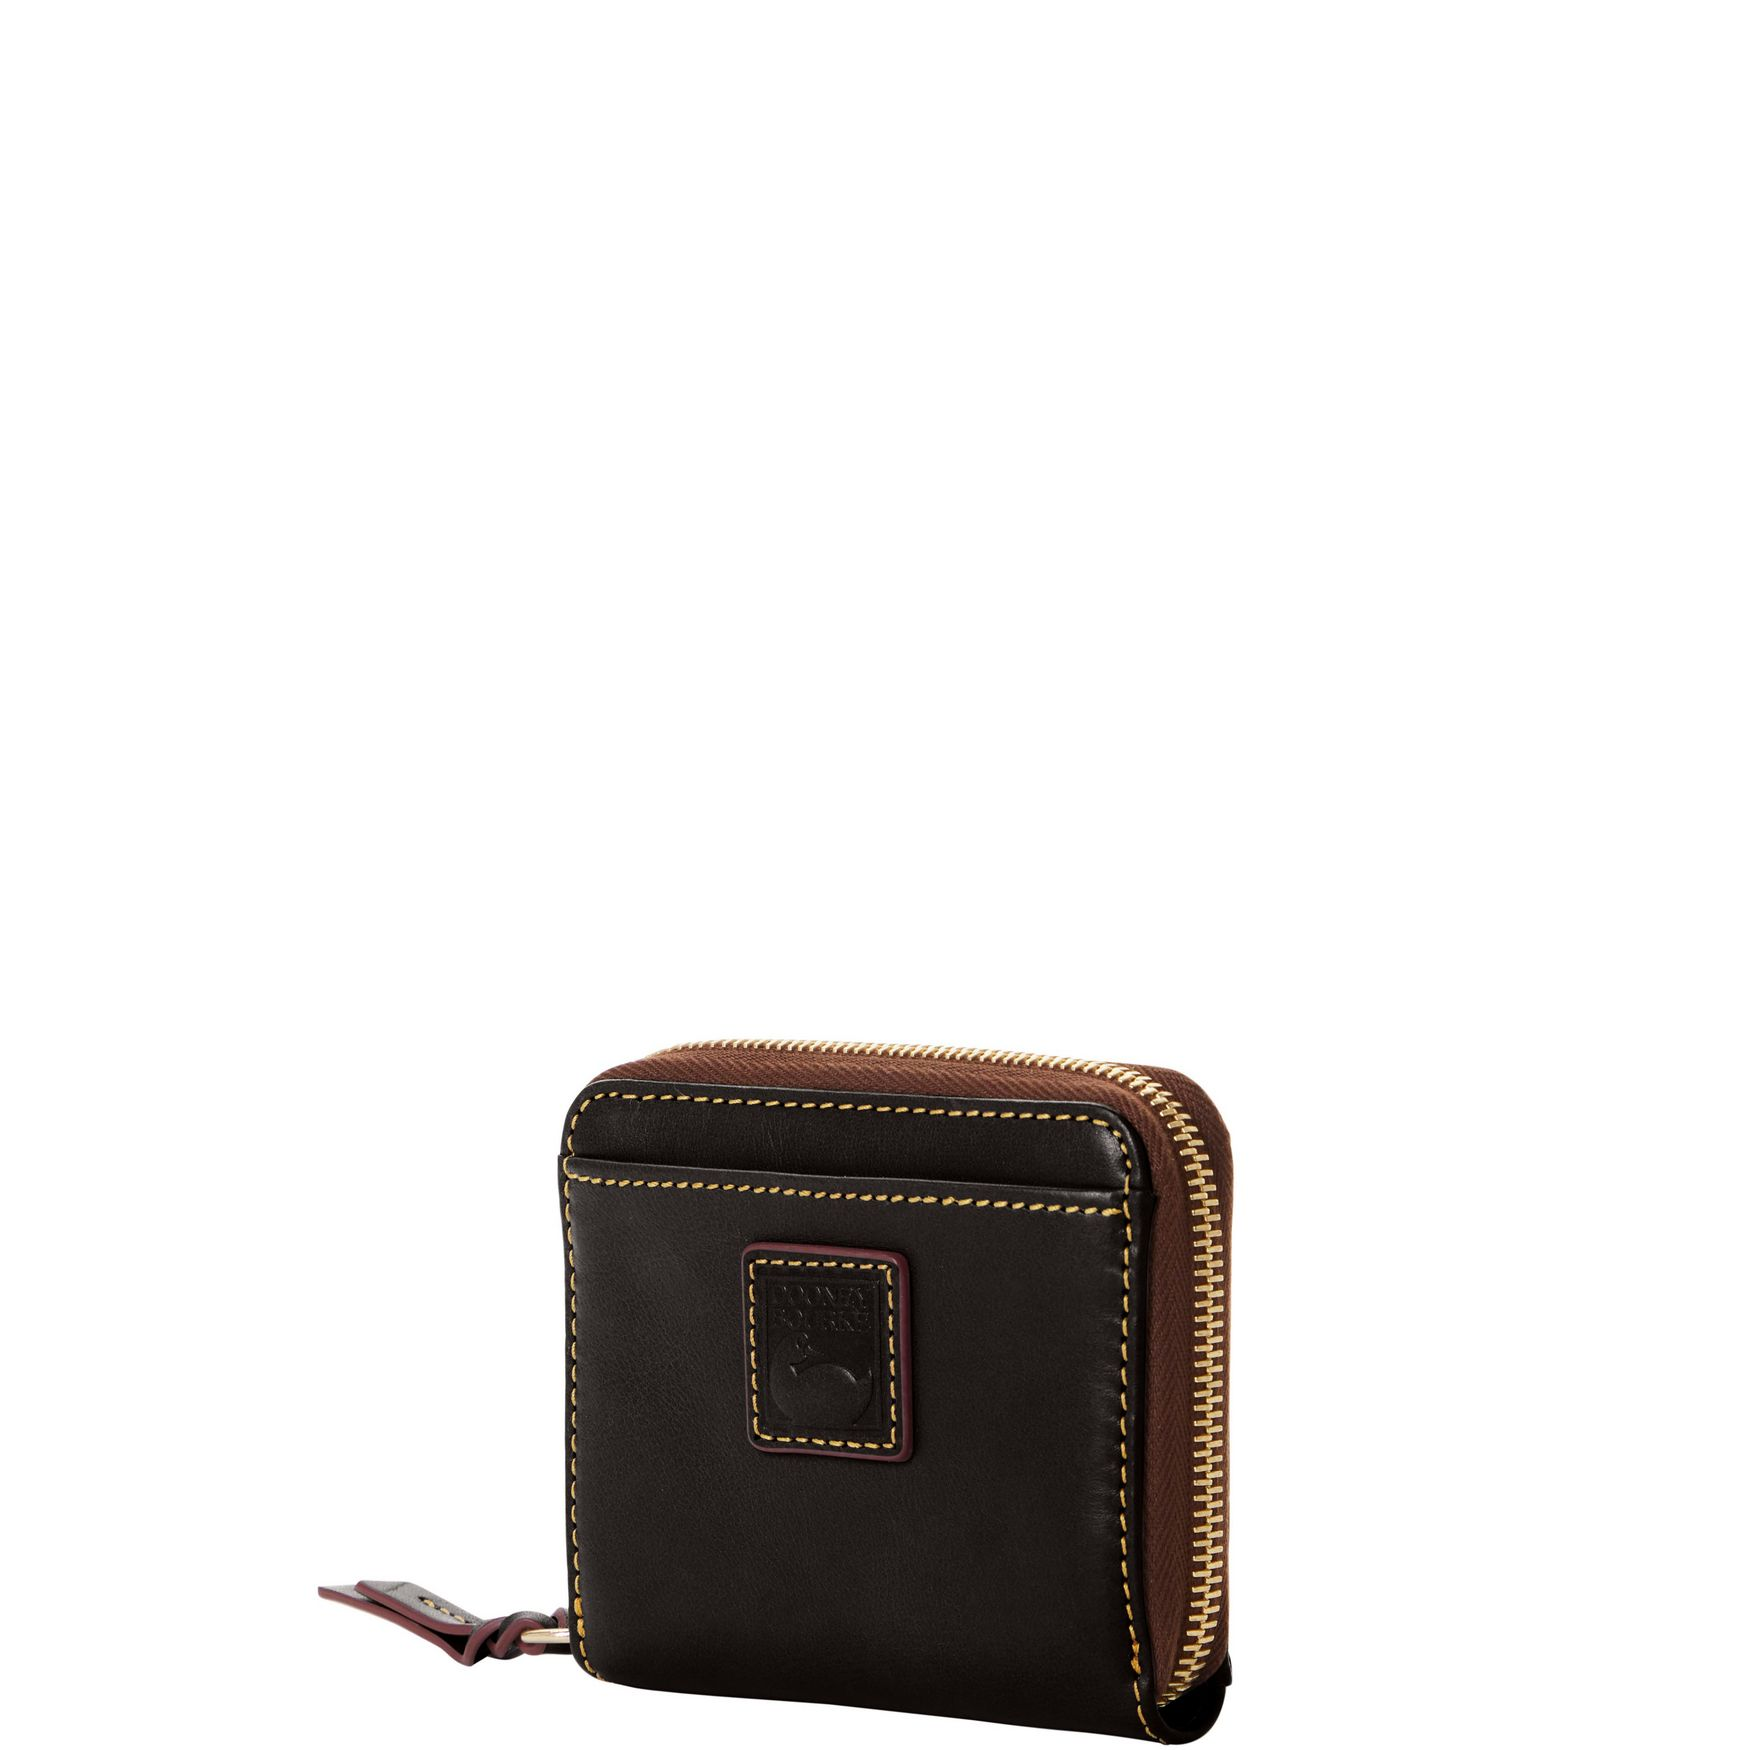 Dooney-amp-Bourke-Florentine-Small-Zip-Around-Wallet thumbnail 4